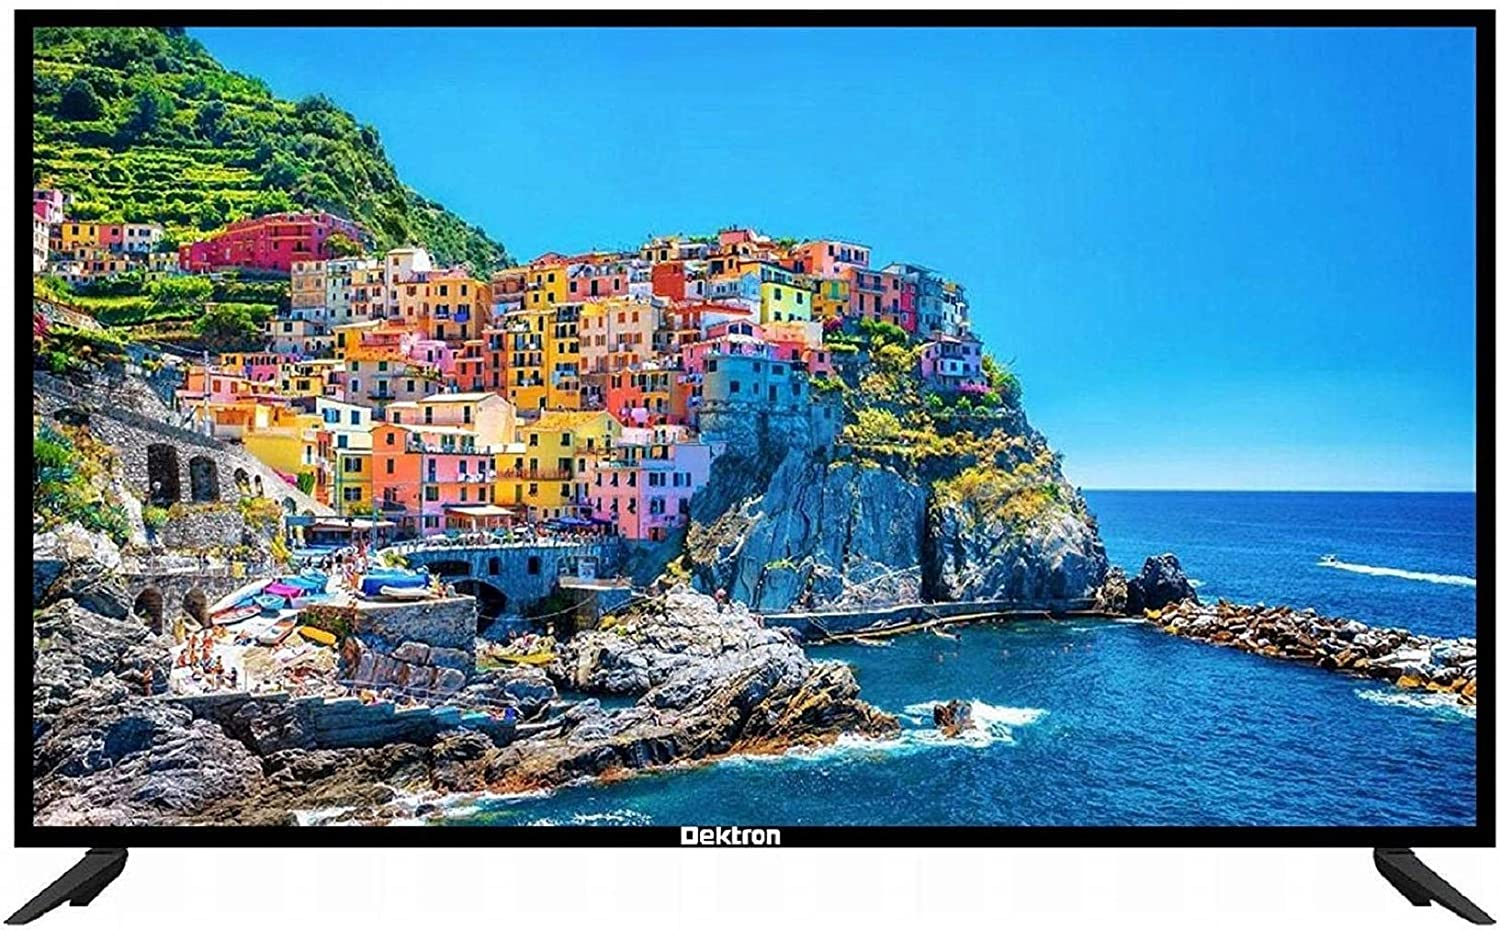 Dektron 80 cm (32 Inches) HD Ready LED TV DK3277HDR (Black) (2017 model)